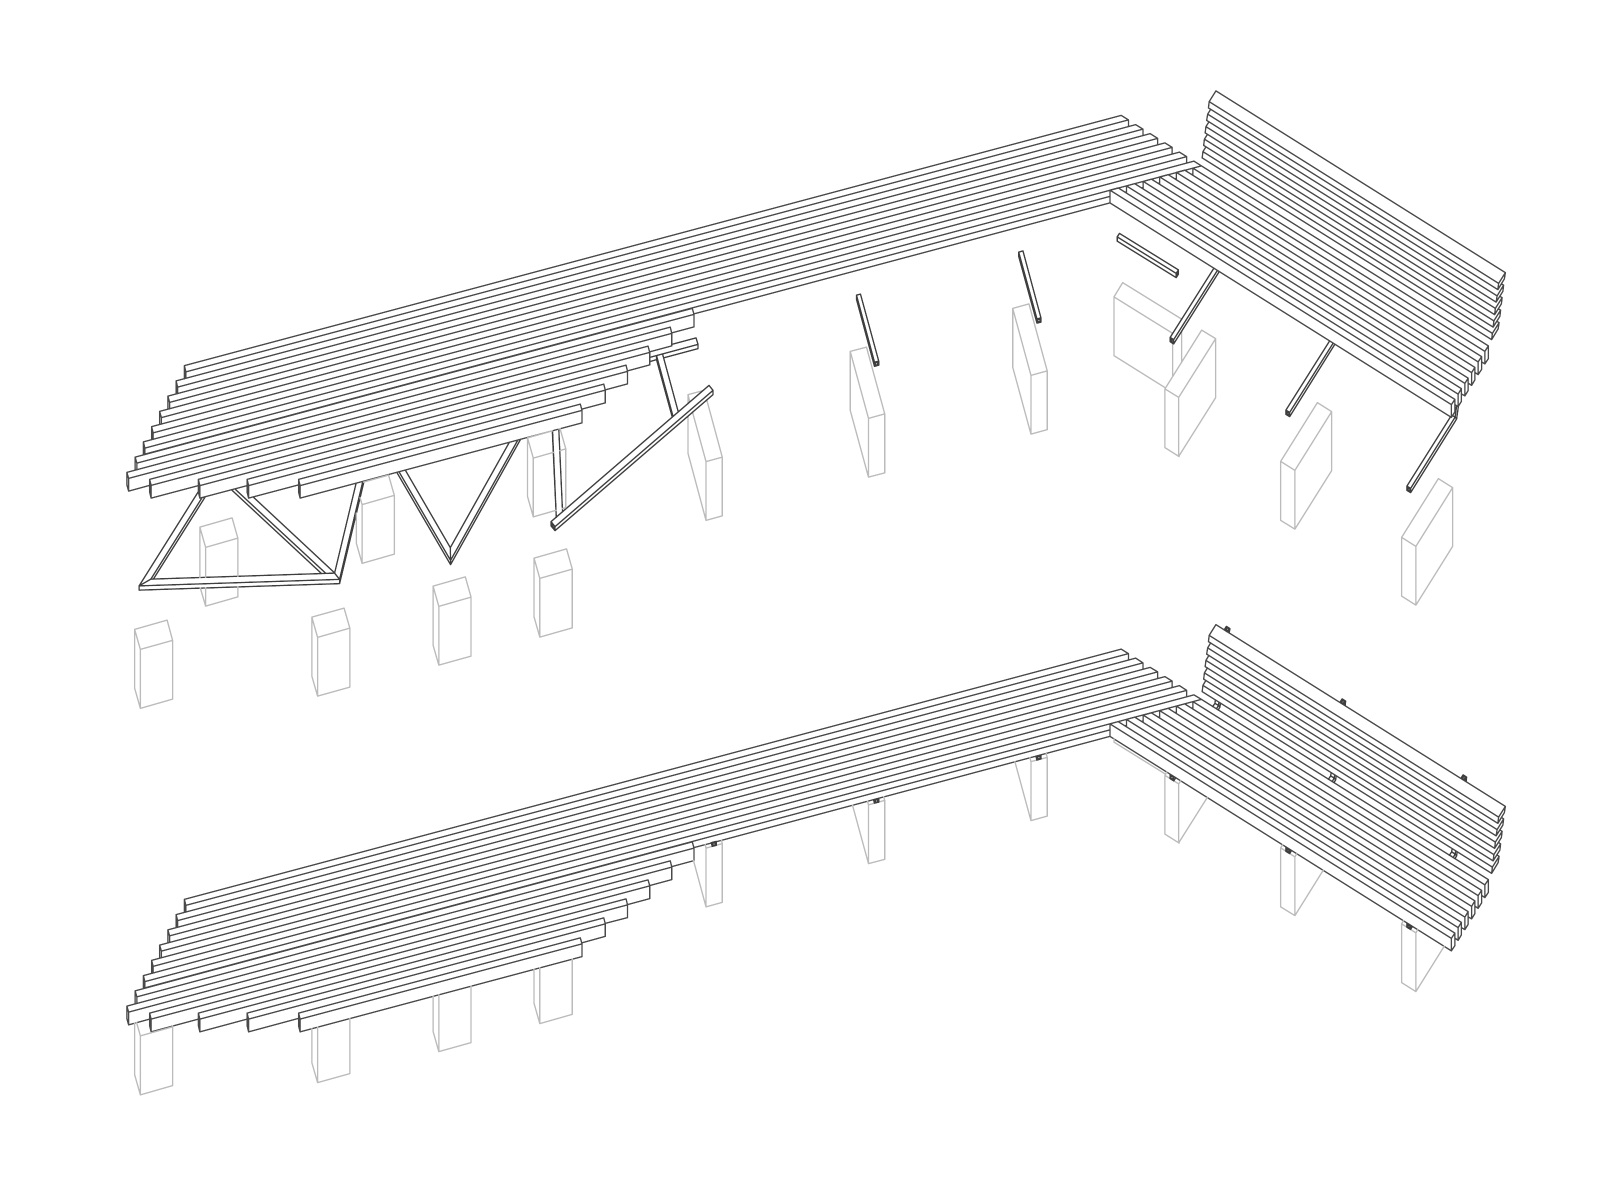 Final benches: exploded, axonometric, construction drawings showing white oak wooden slats, welded steel frames, and poured concrete feet. May 2012.